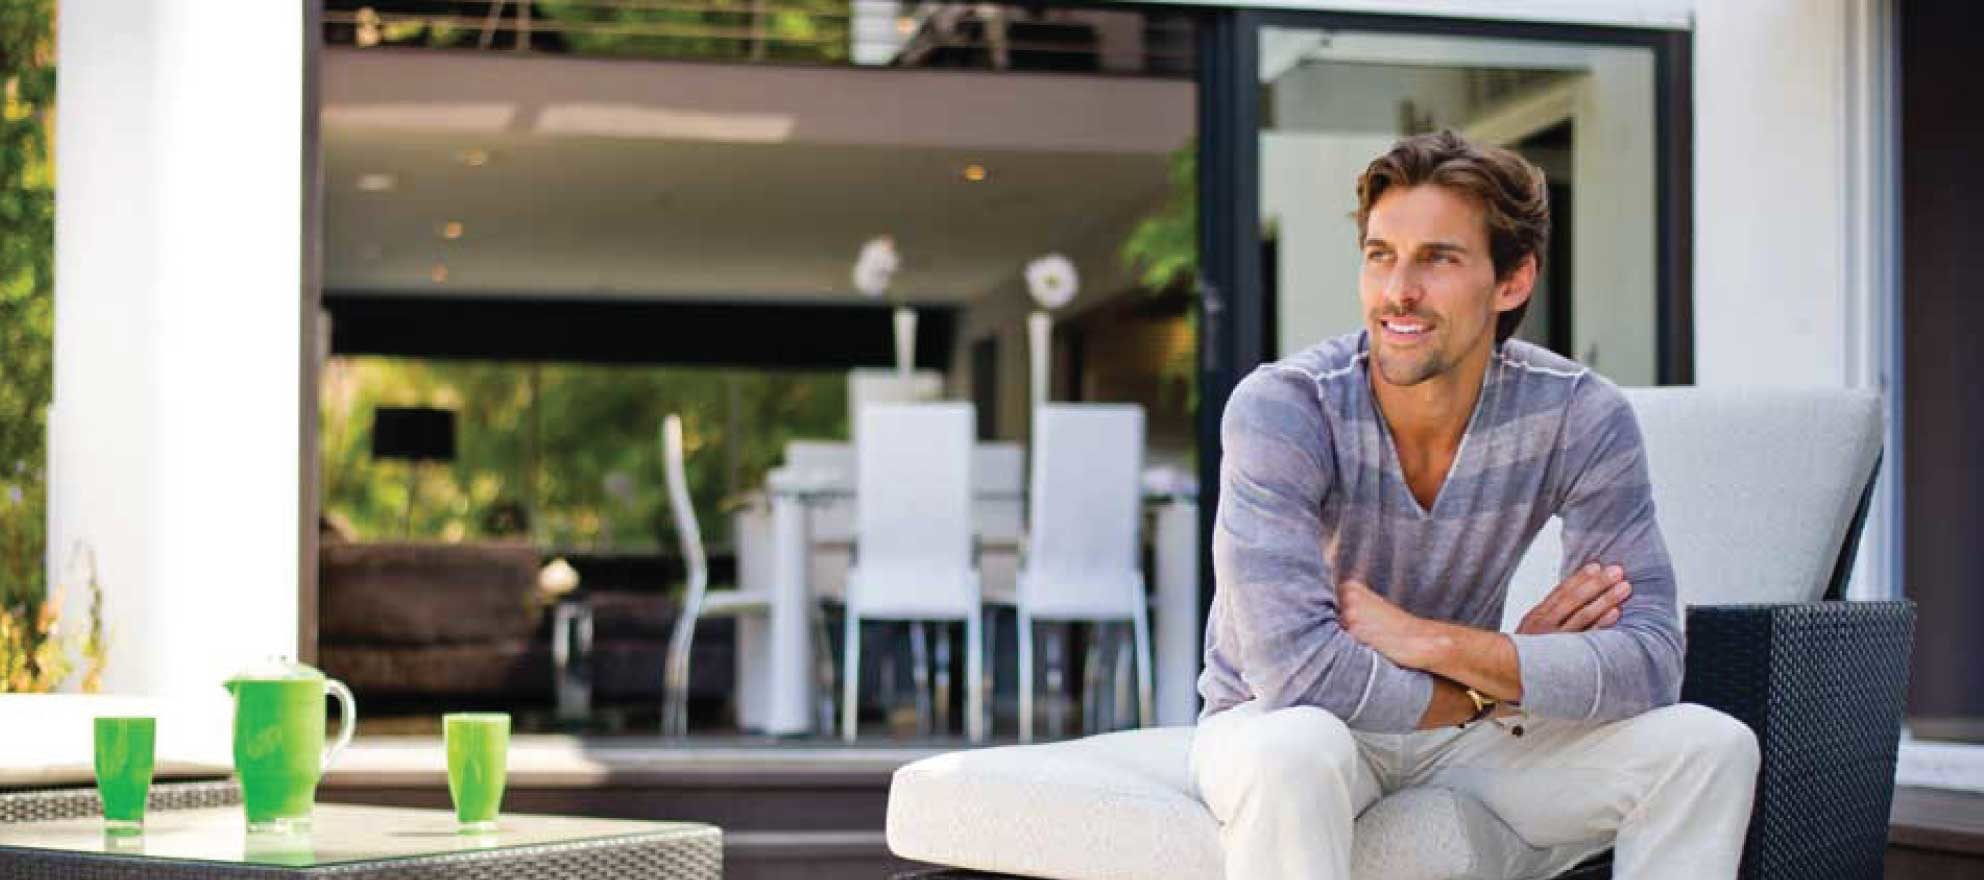 Madison Hildebrand: Find a brokerage that will help you focus on growing your business